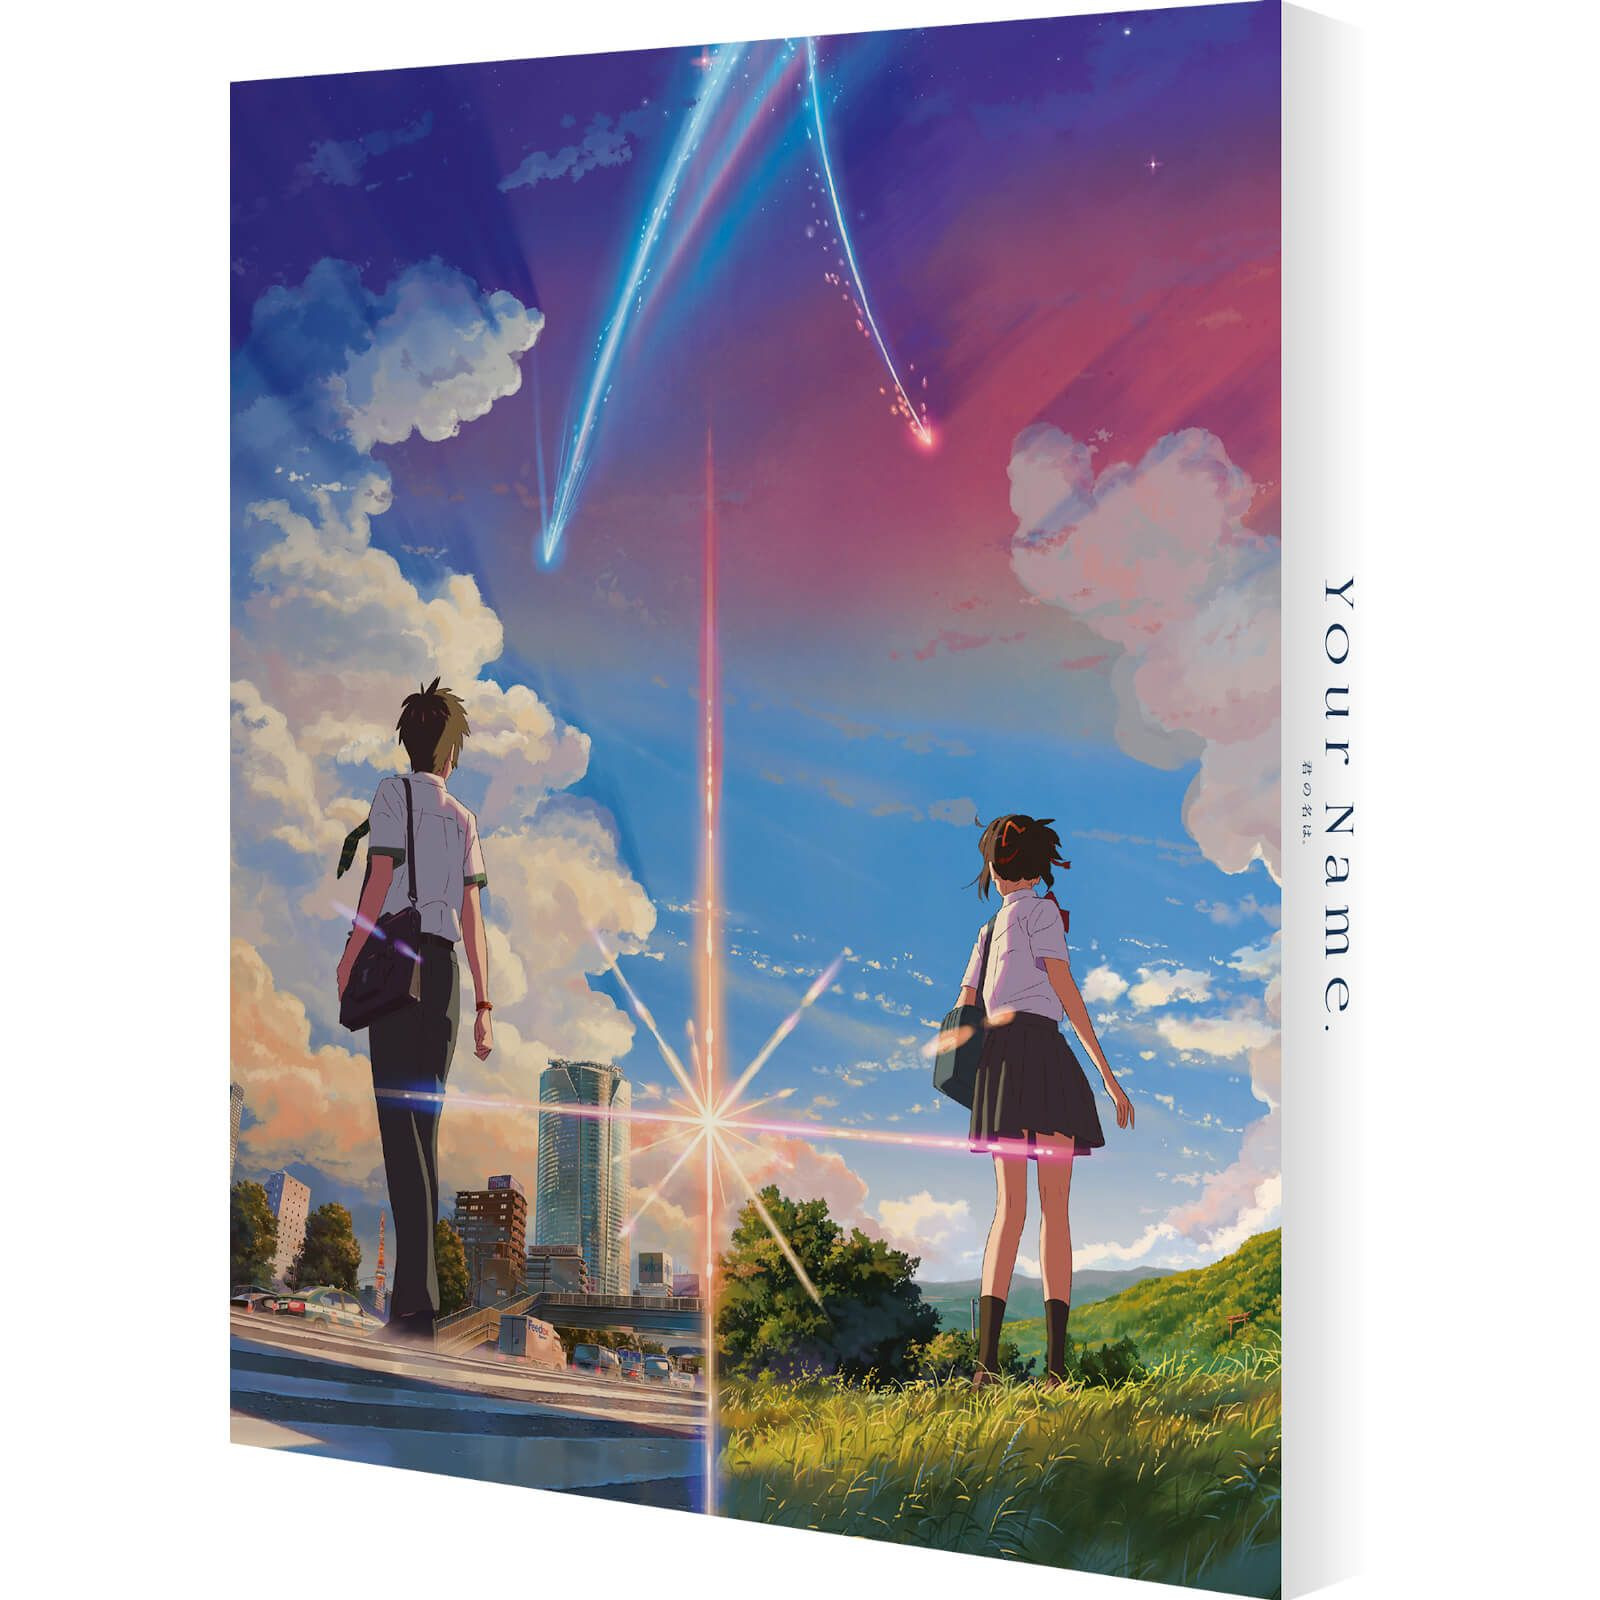 Your Name 4k Ultra Hd Collector S Edition Includes 2d Blu Ray In 2021 Hd Anime Wallpapers Kimi No Na Wa Anime